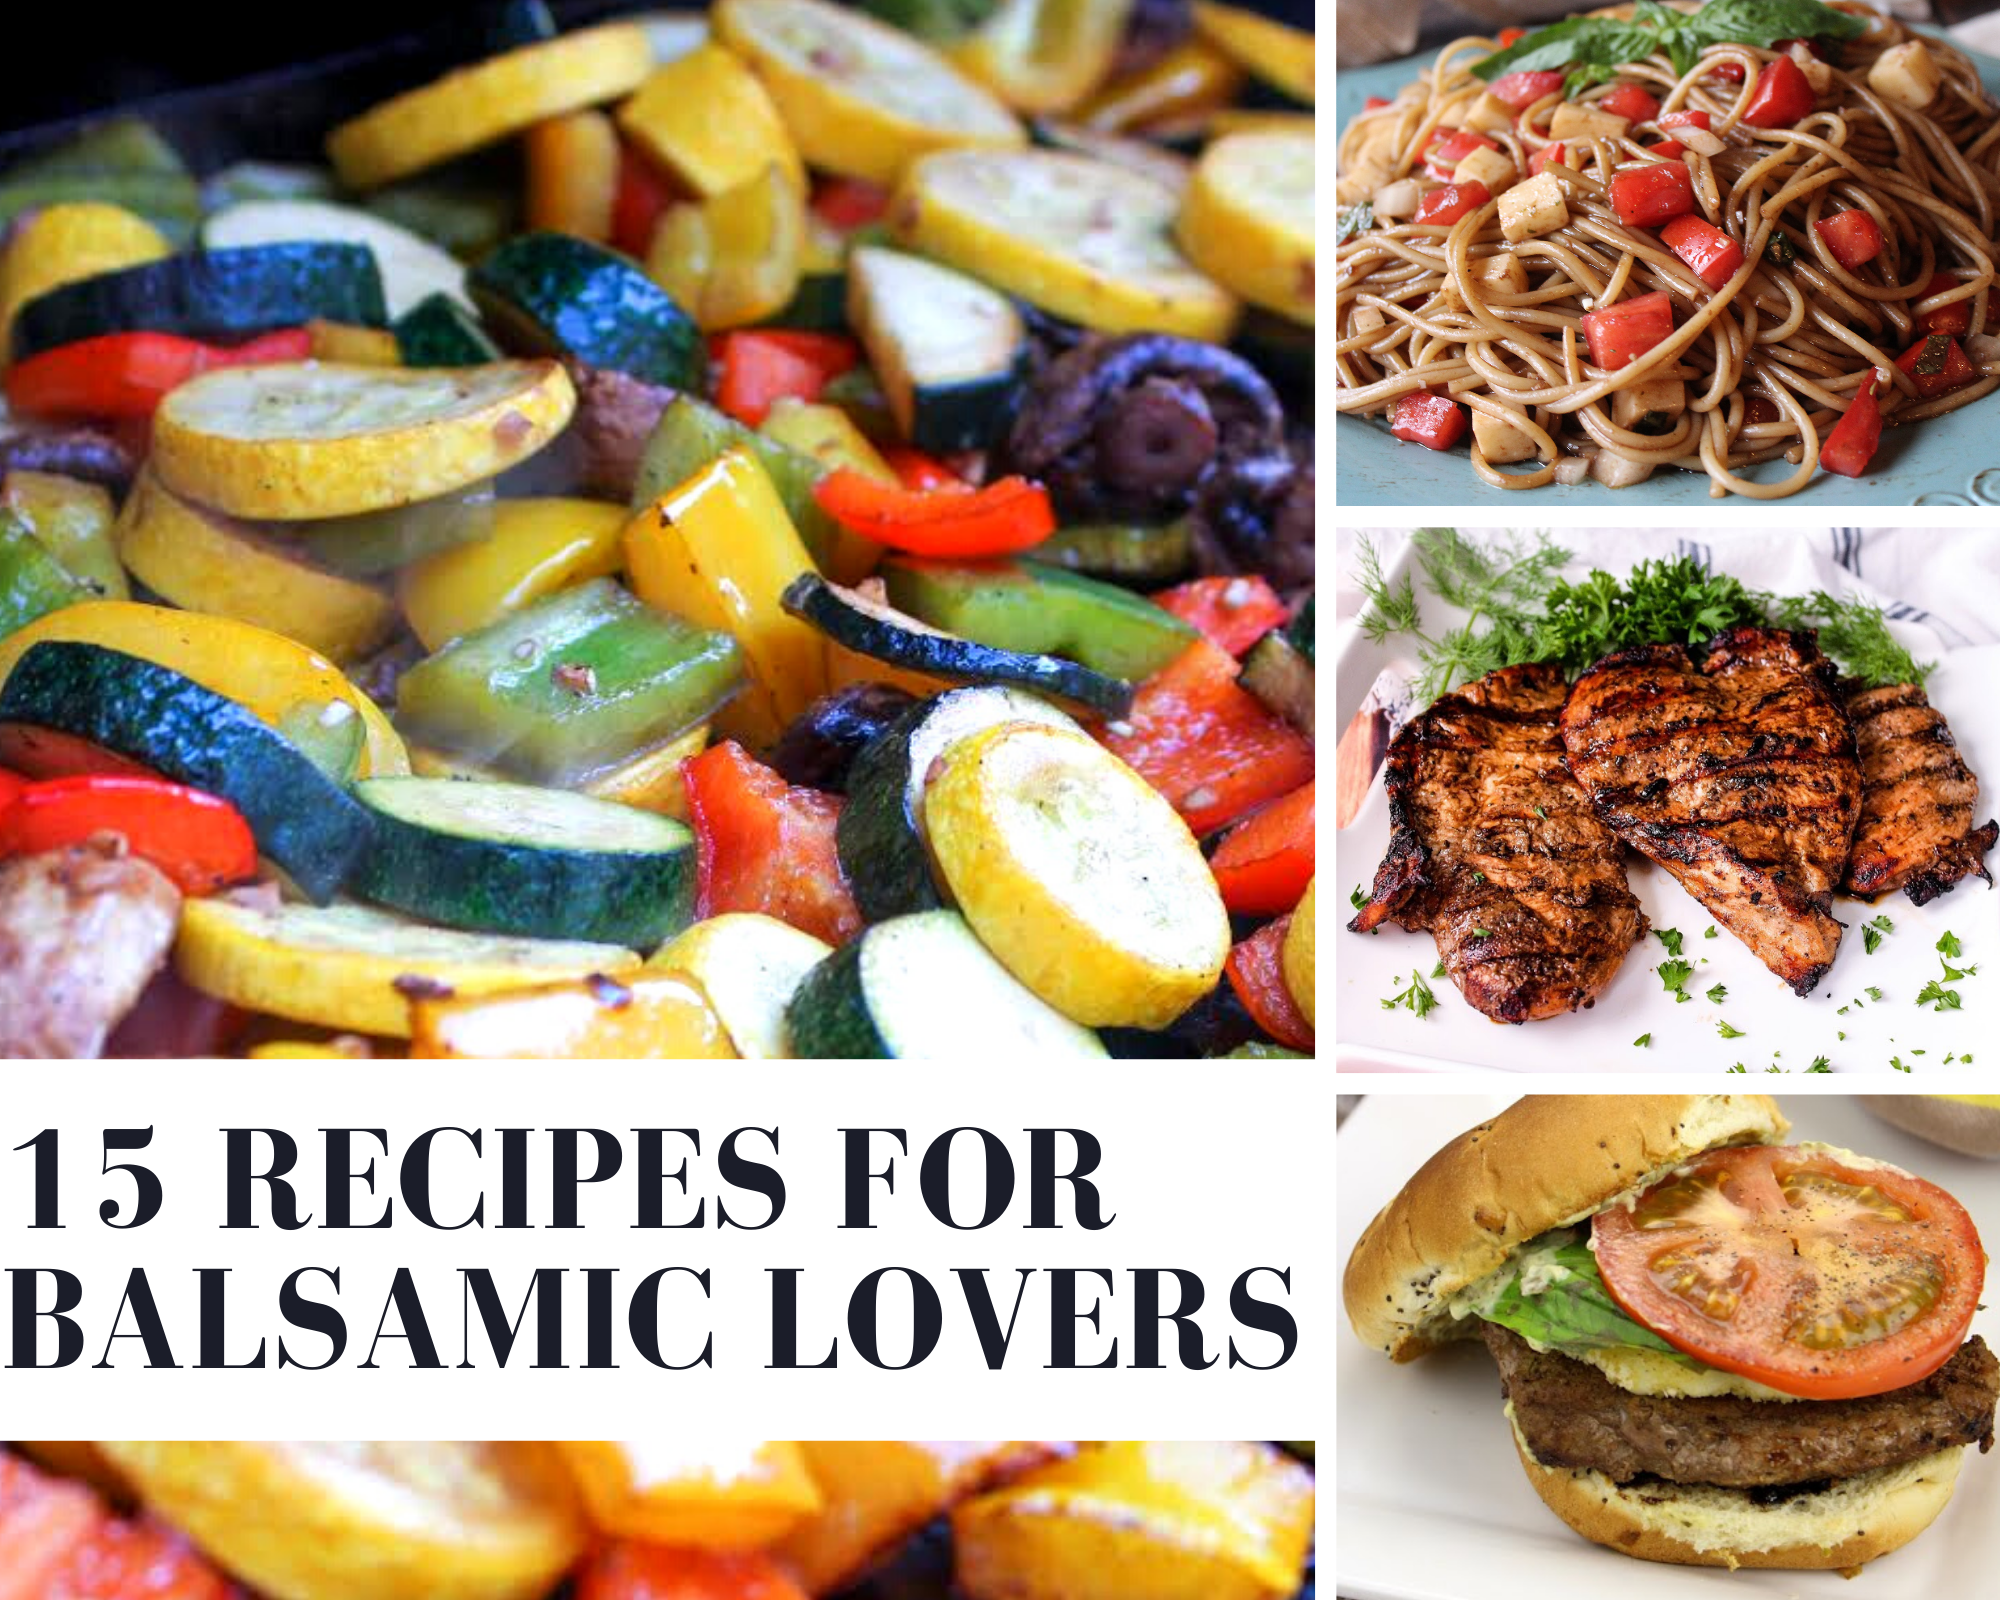 balsamic recipes to try